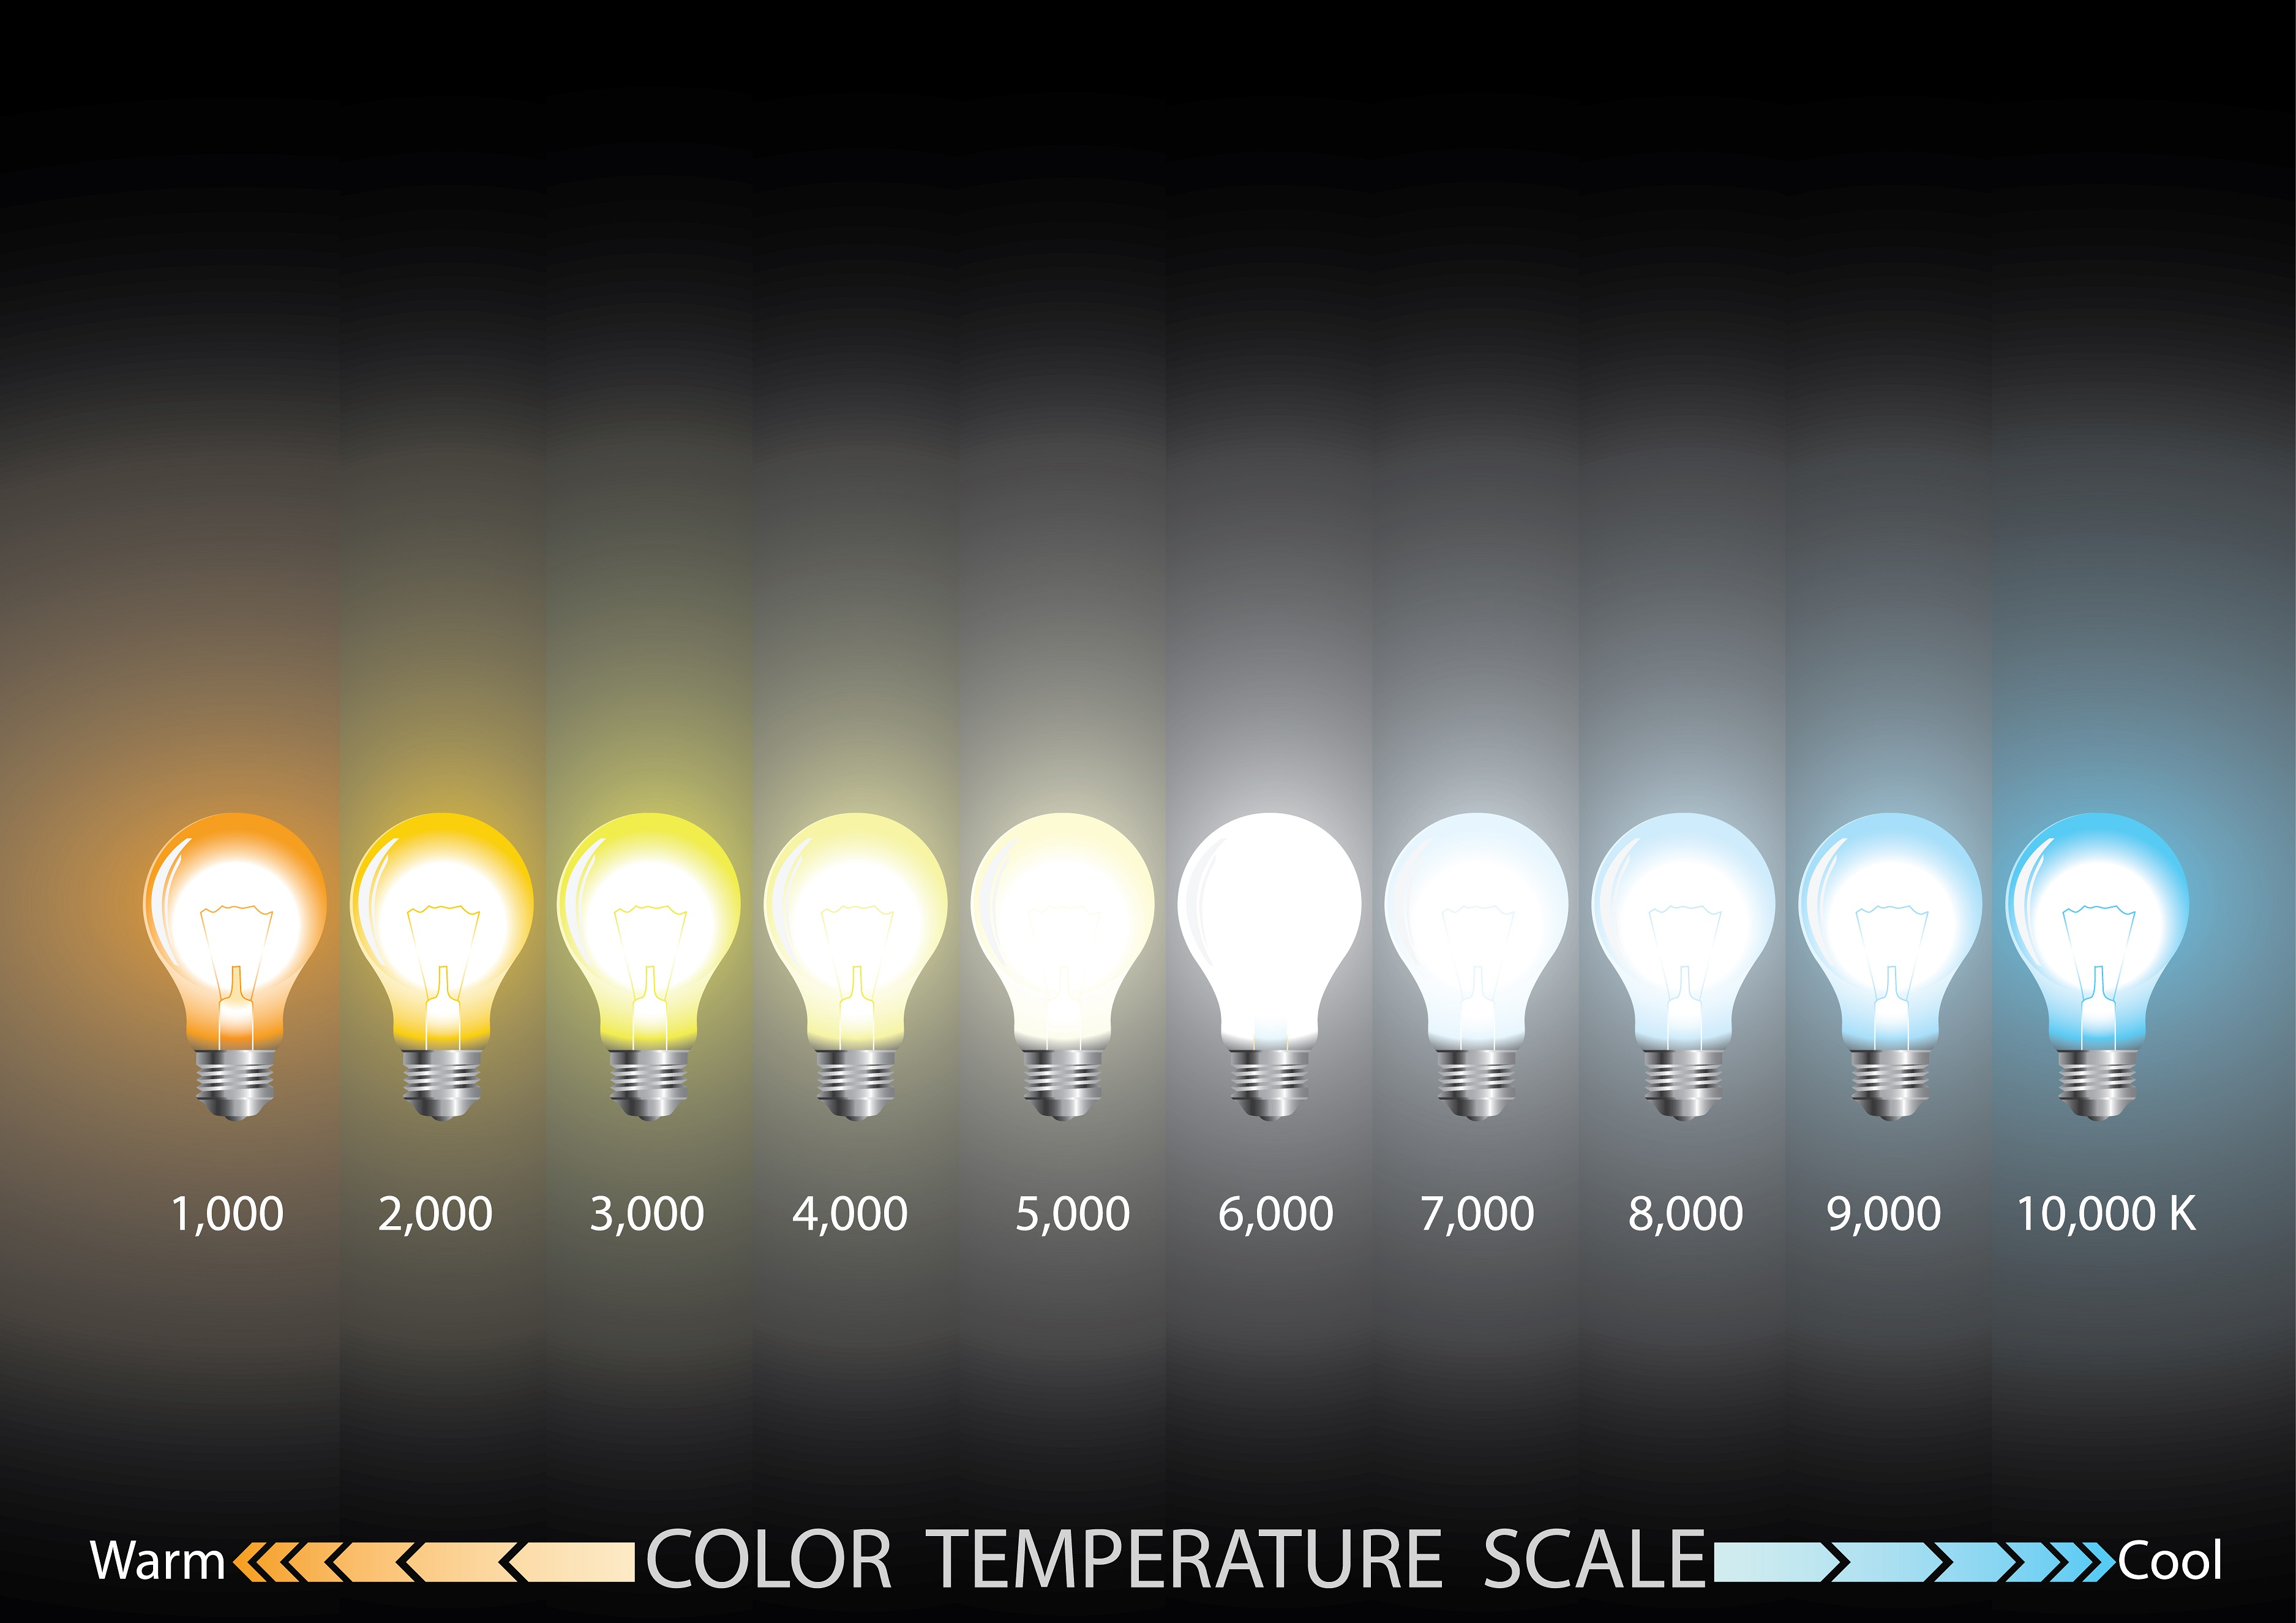 Color temperatures from 1,000 - 10,000 K